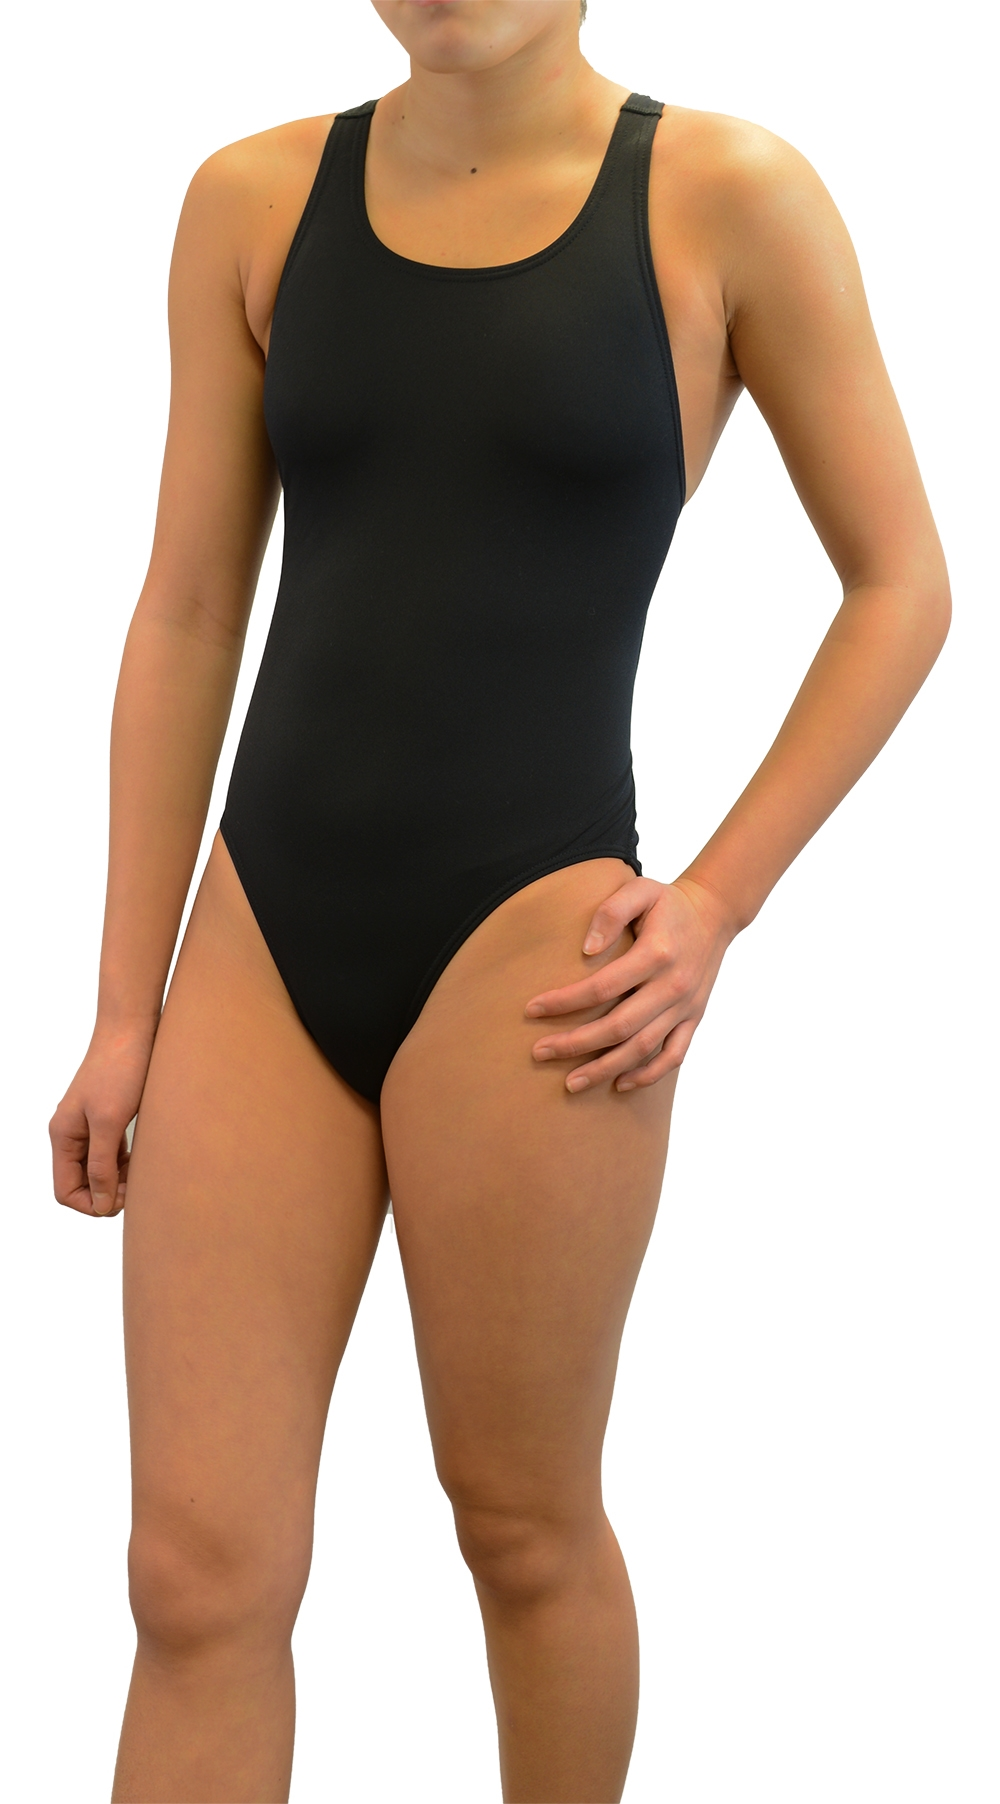 Adoretex Women's Polyester Wide Strap Training Swimsuit